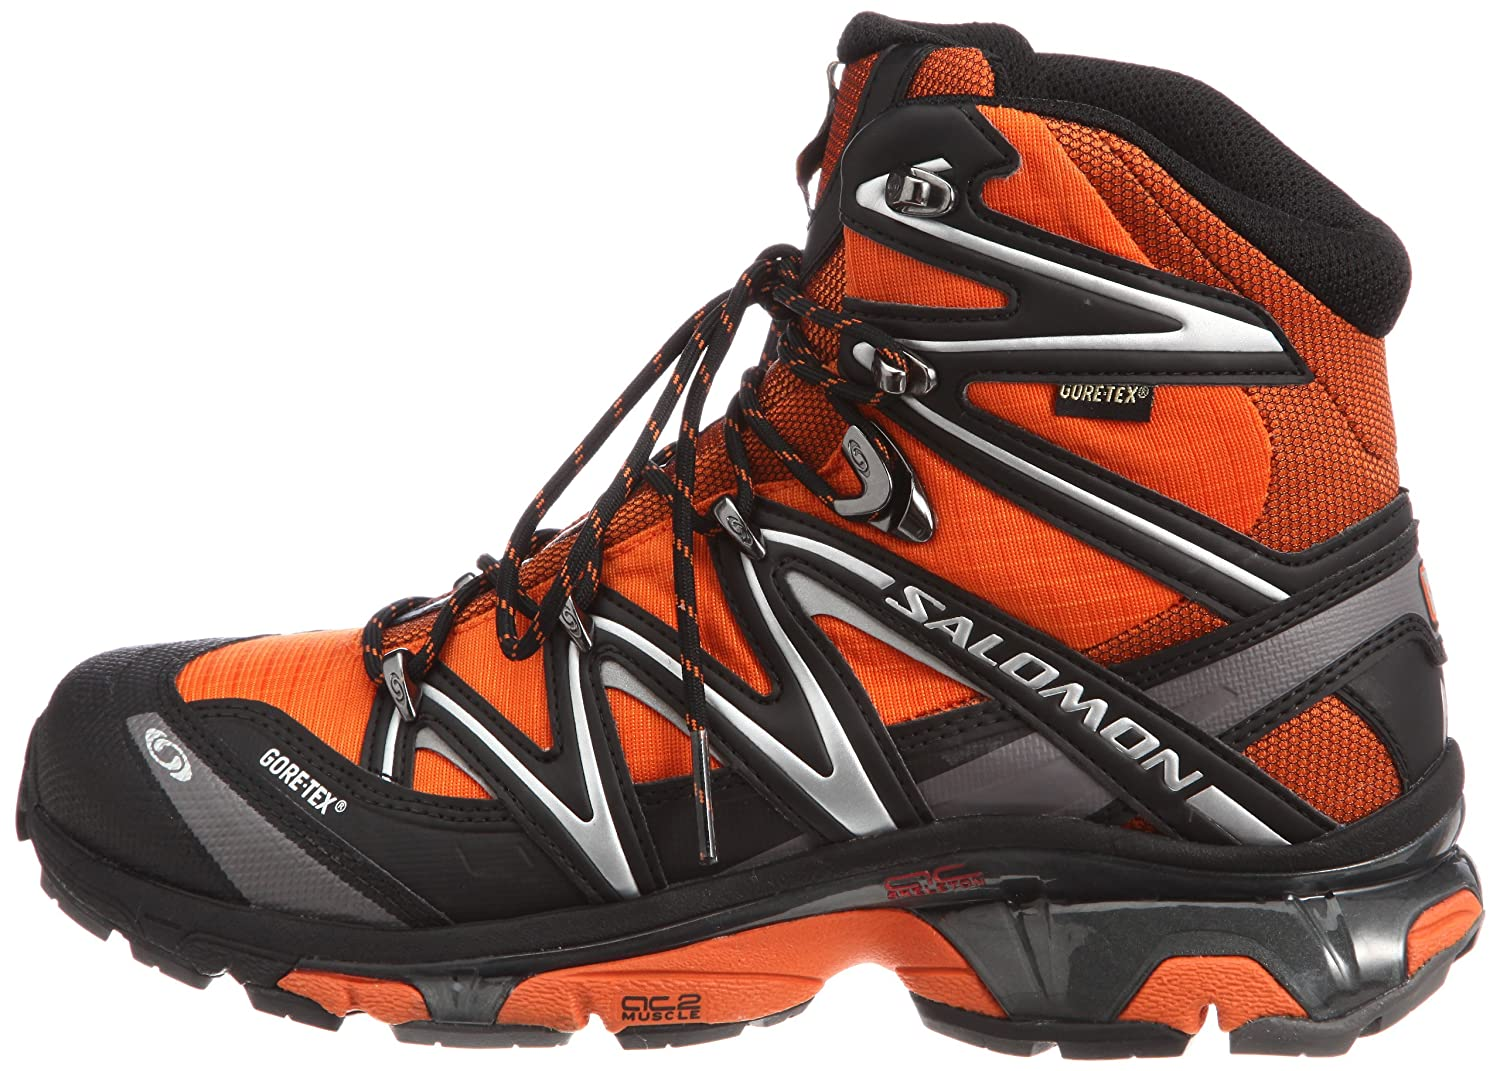 Amazon.com | Salomon Mens Wings Sky GTX Fast Light Backpacking Boot, Xgames/Black/Autobahn, 12.5 M US Mens/14.5 M US Womens | Backpacking Boots